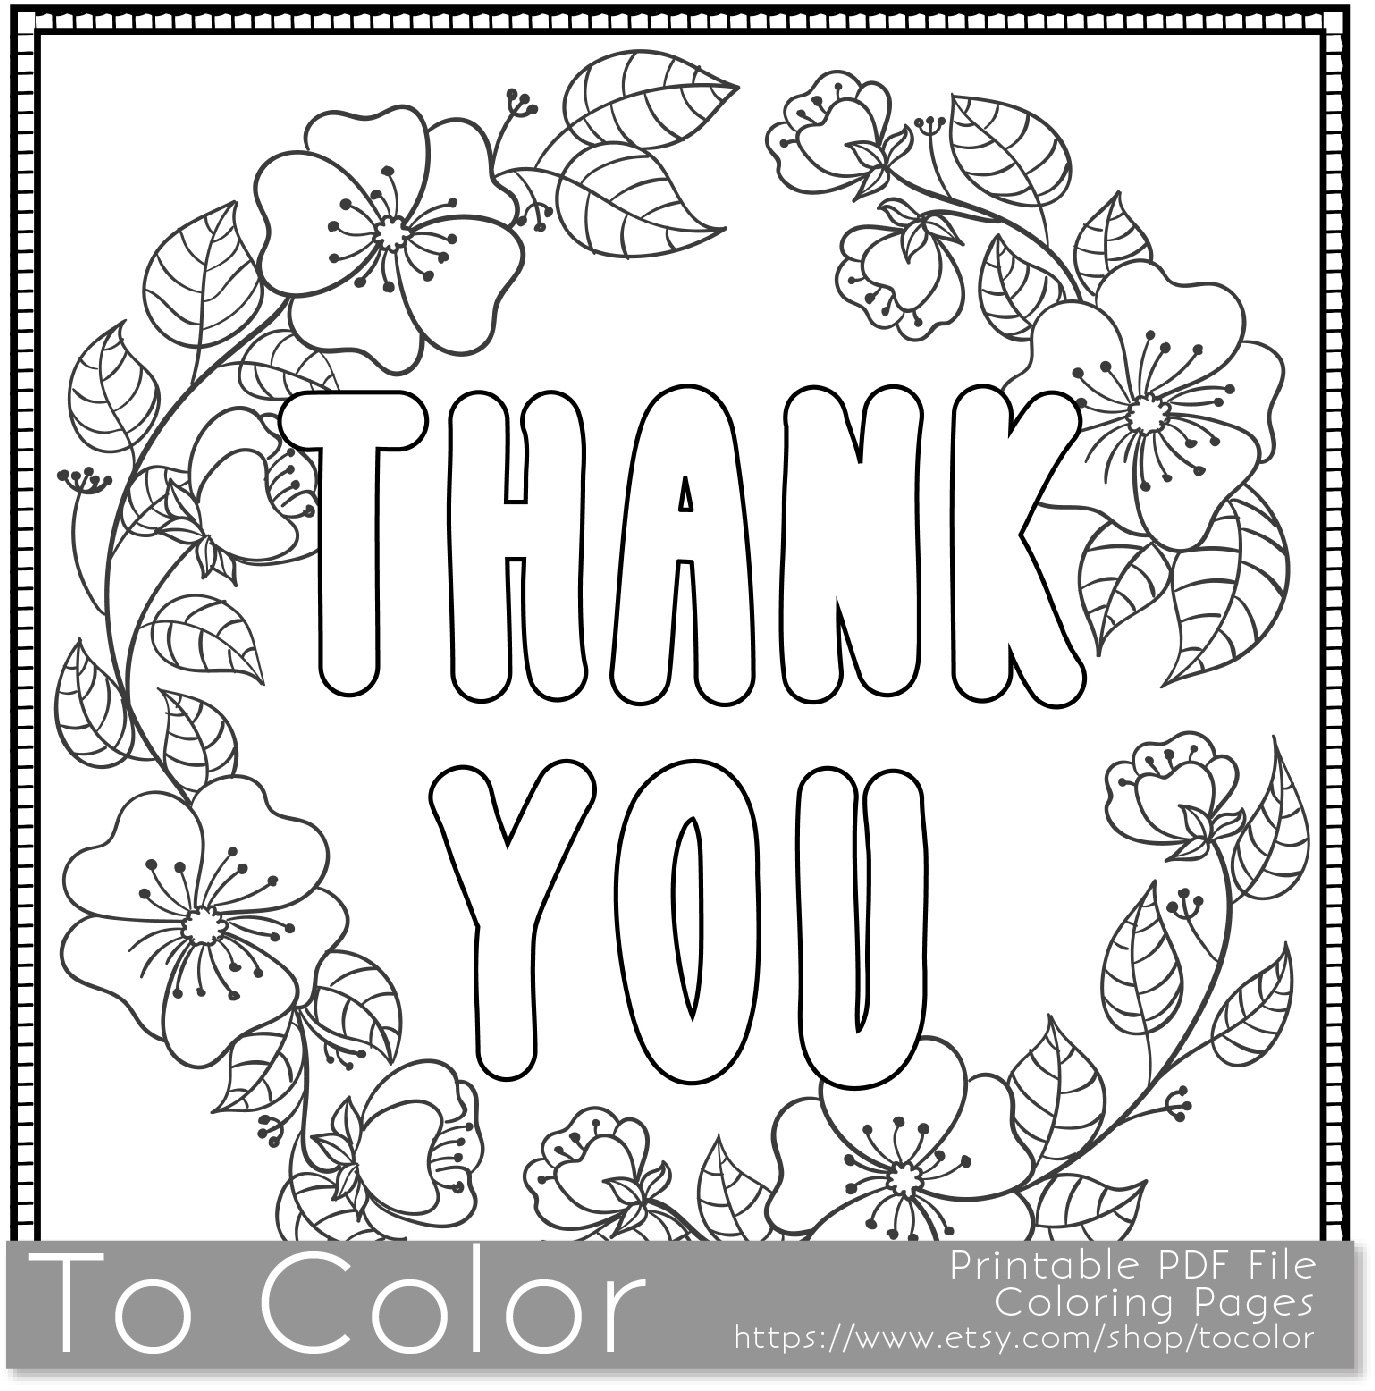 Thank You Printable Coloring Page For Adults Pdf Jpg Etsy In 2021 Printable Coloring Pages Free Printable Coloring Pages Free Coloring Pages